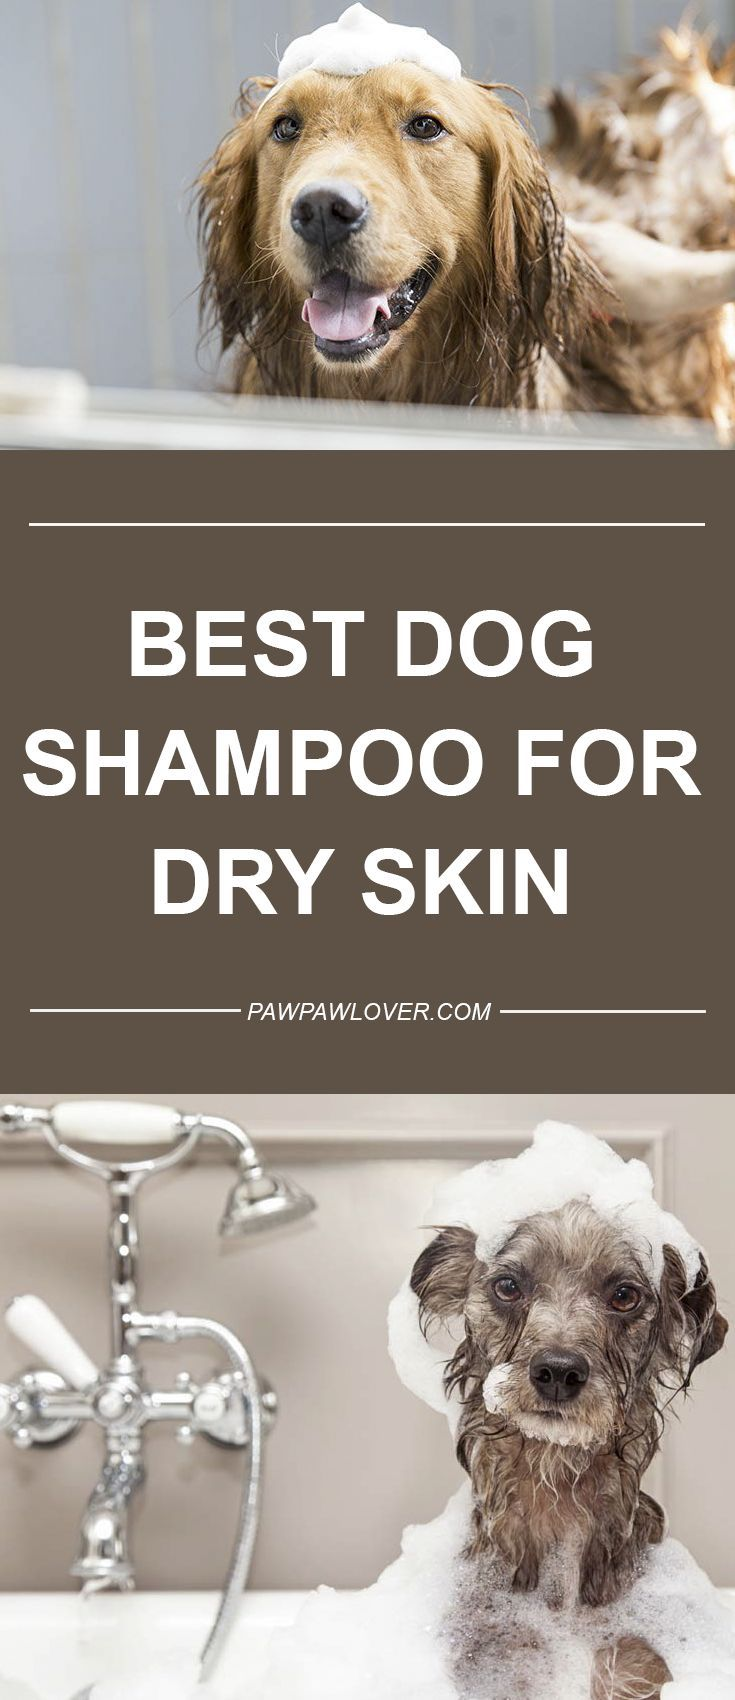 Pin By Andrewcurtis On Doggies Best Dog Shampoo Dog Shampoo Diy Dog Shampoo